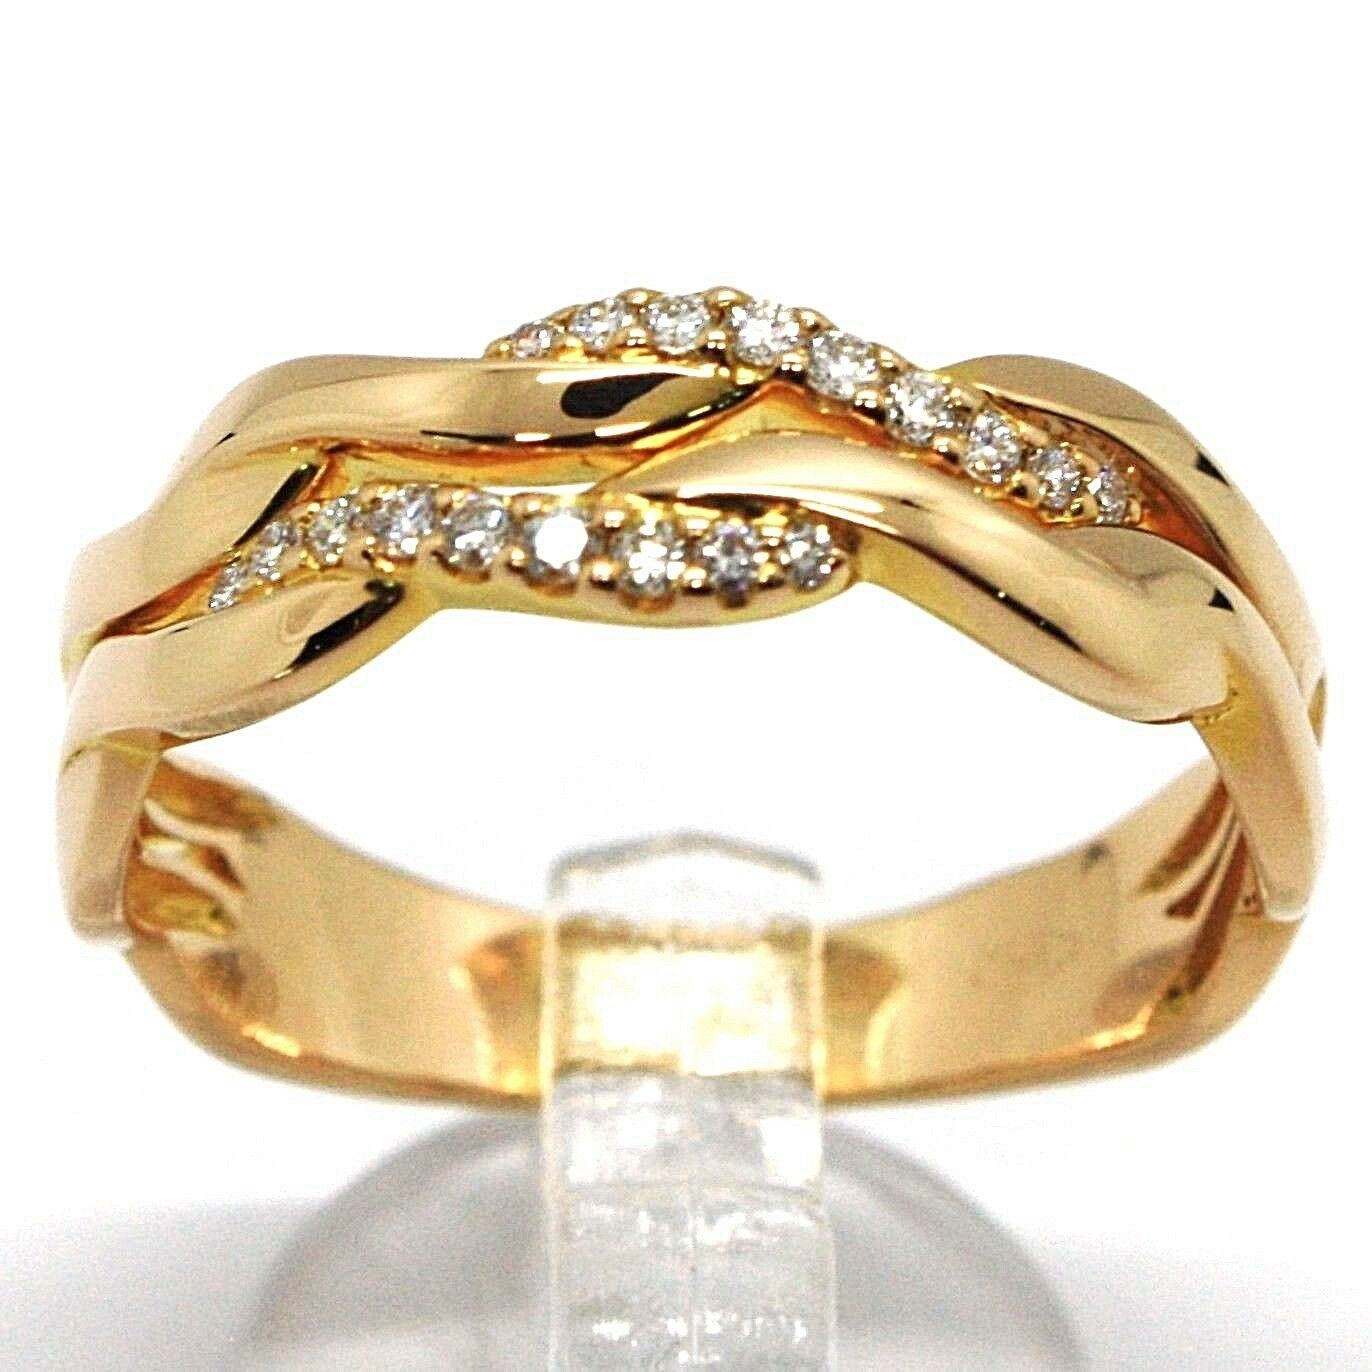 SOLID 18K ROSE GOLD BAND RING, DIAMONDS CT 0.16, WAVE, ONDULATE, BRAID